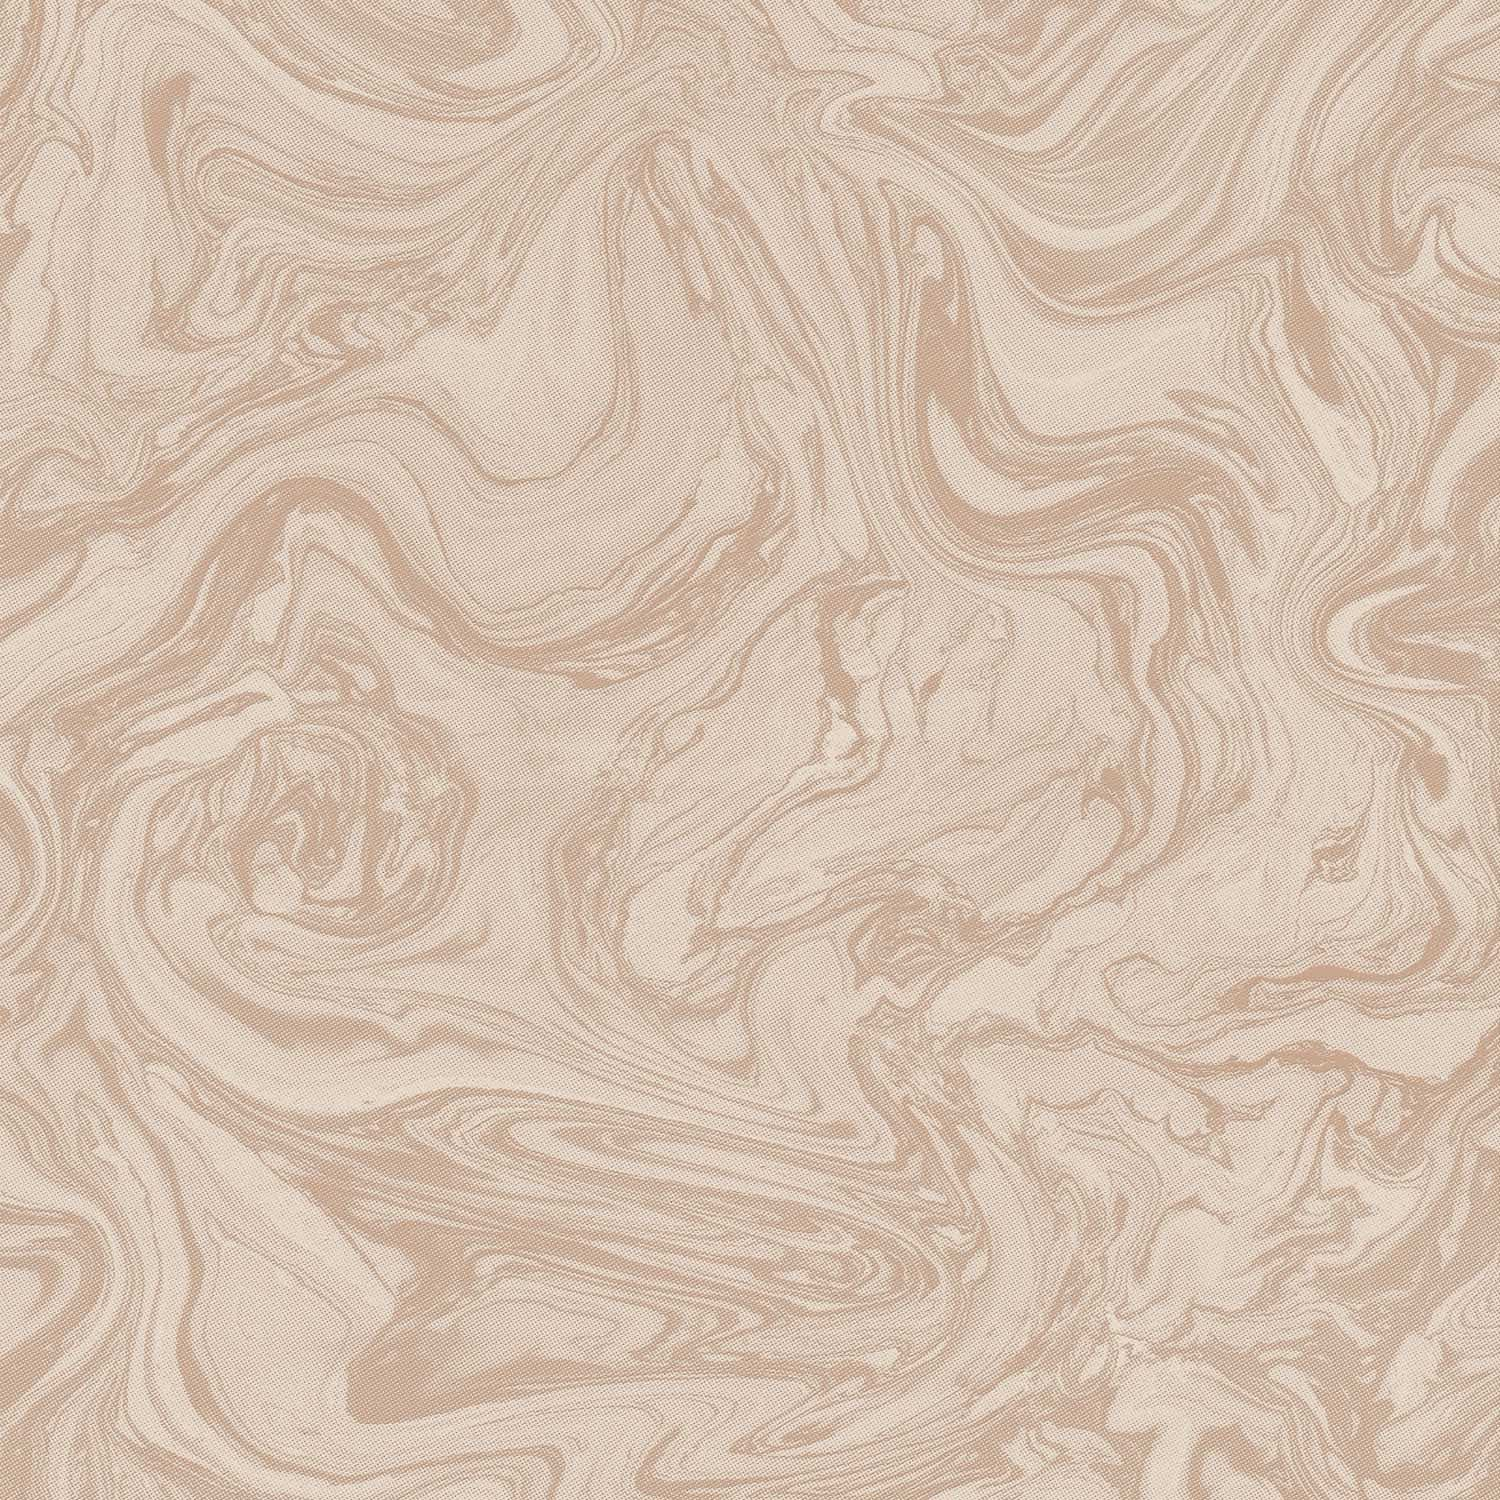 Cool Wallpaper Marble Metallic - marble_effect_wallpaper_in_rose_gold_2  Pictures_906774.jpg?v\u003d1518561077